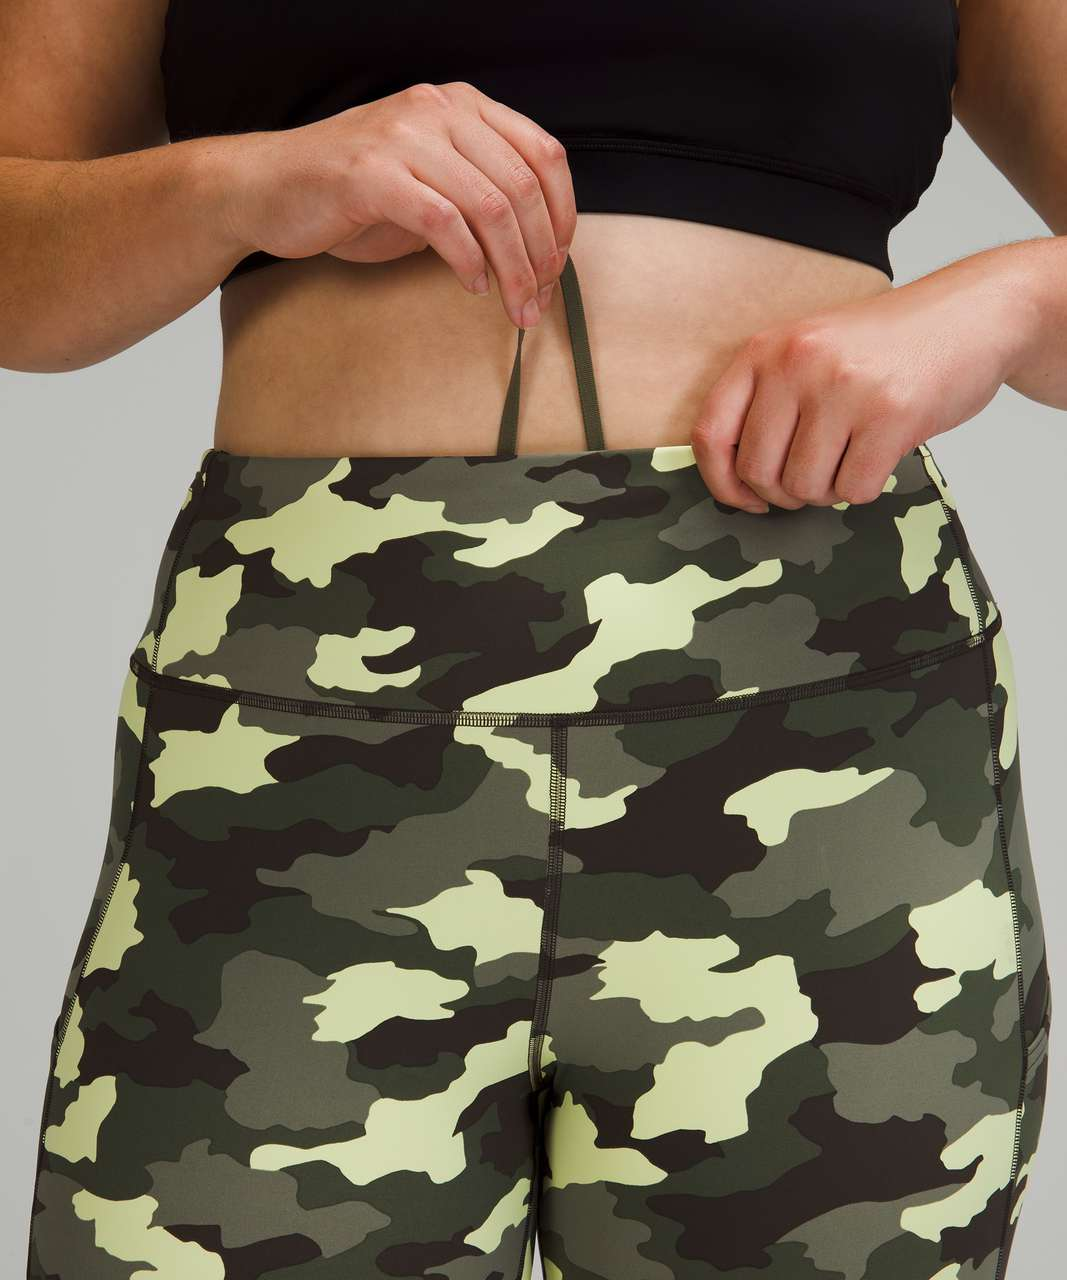 """Lululemon Fast and Free Tight 25"""" *Non-Reflective Nulux - Heritage 365 Camo Crispin Green Multi"""